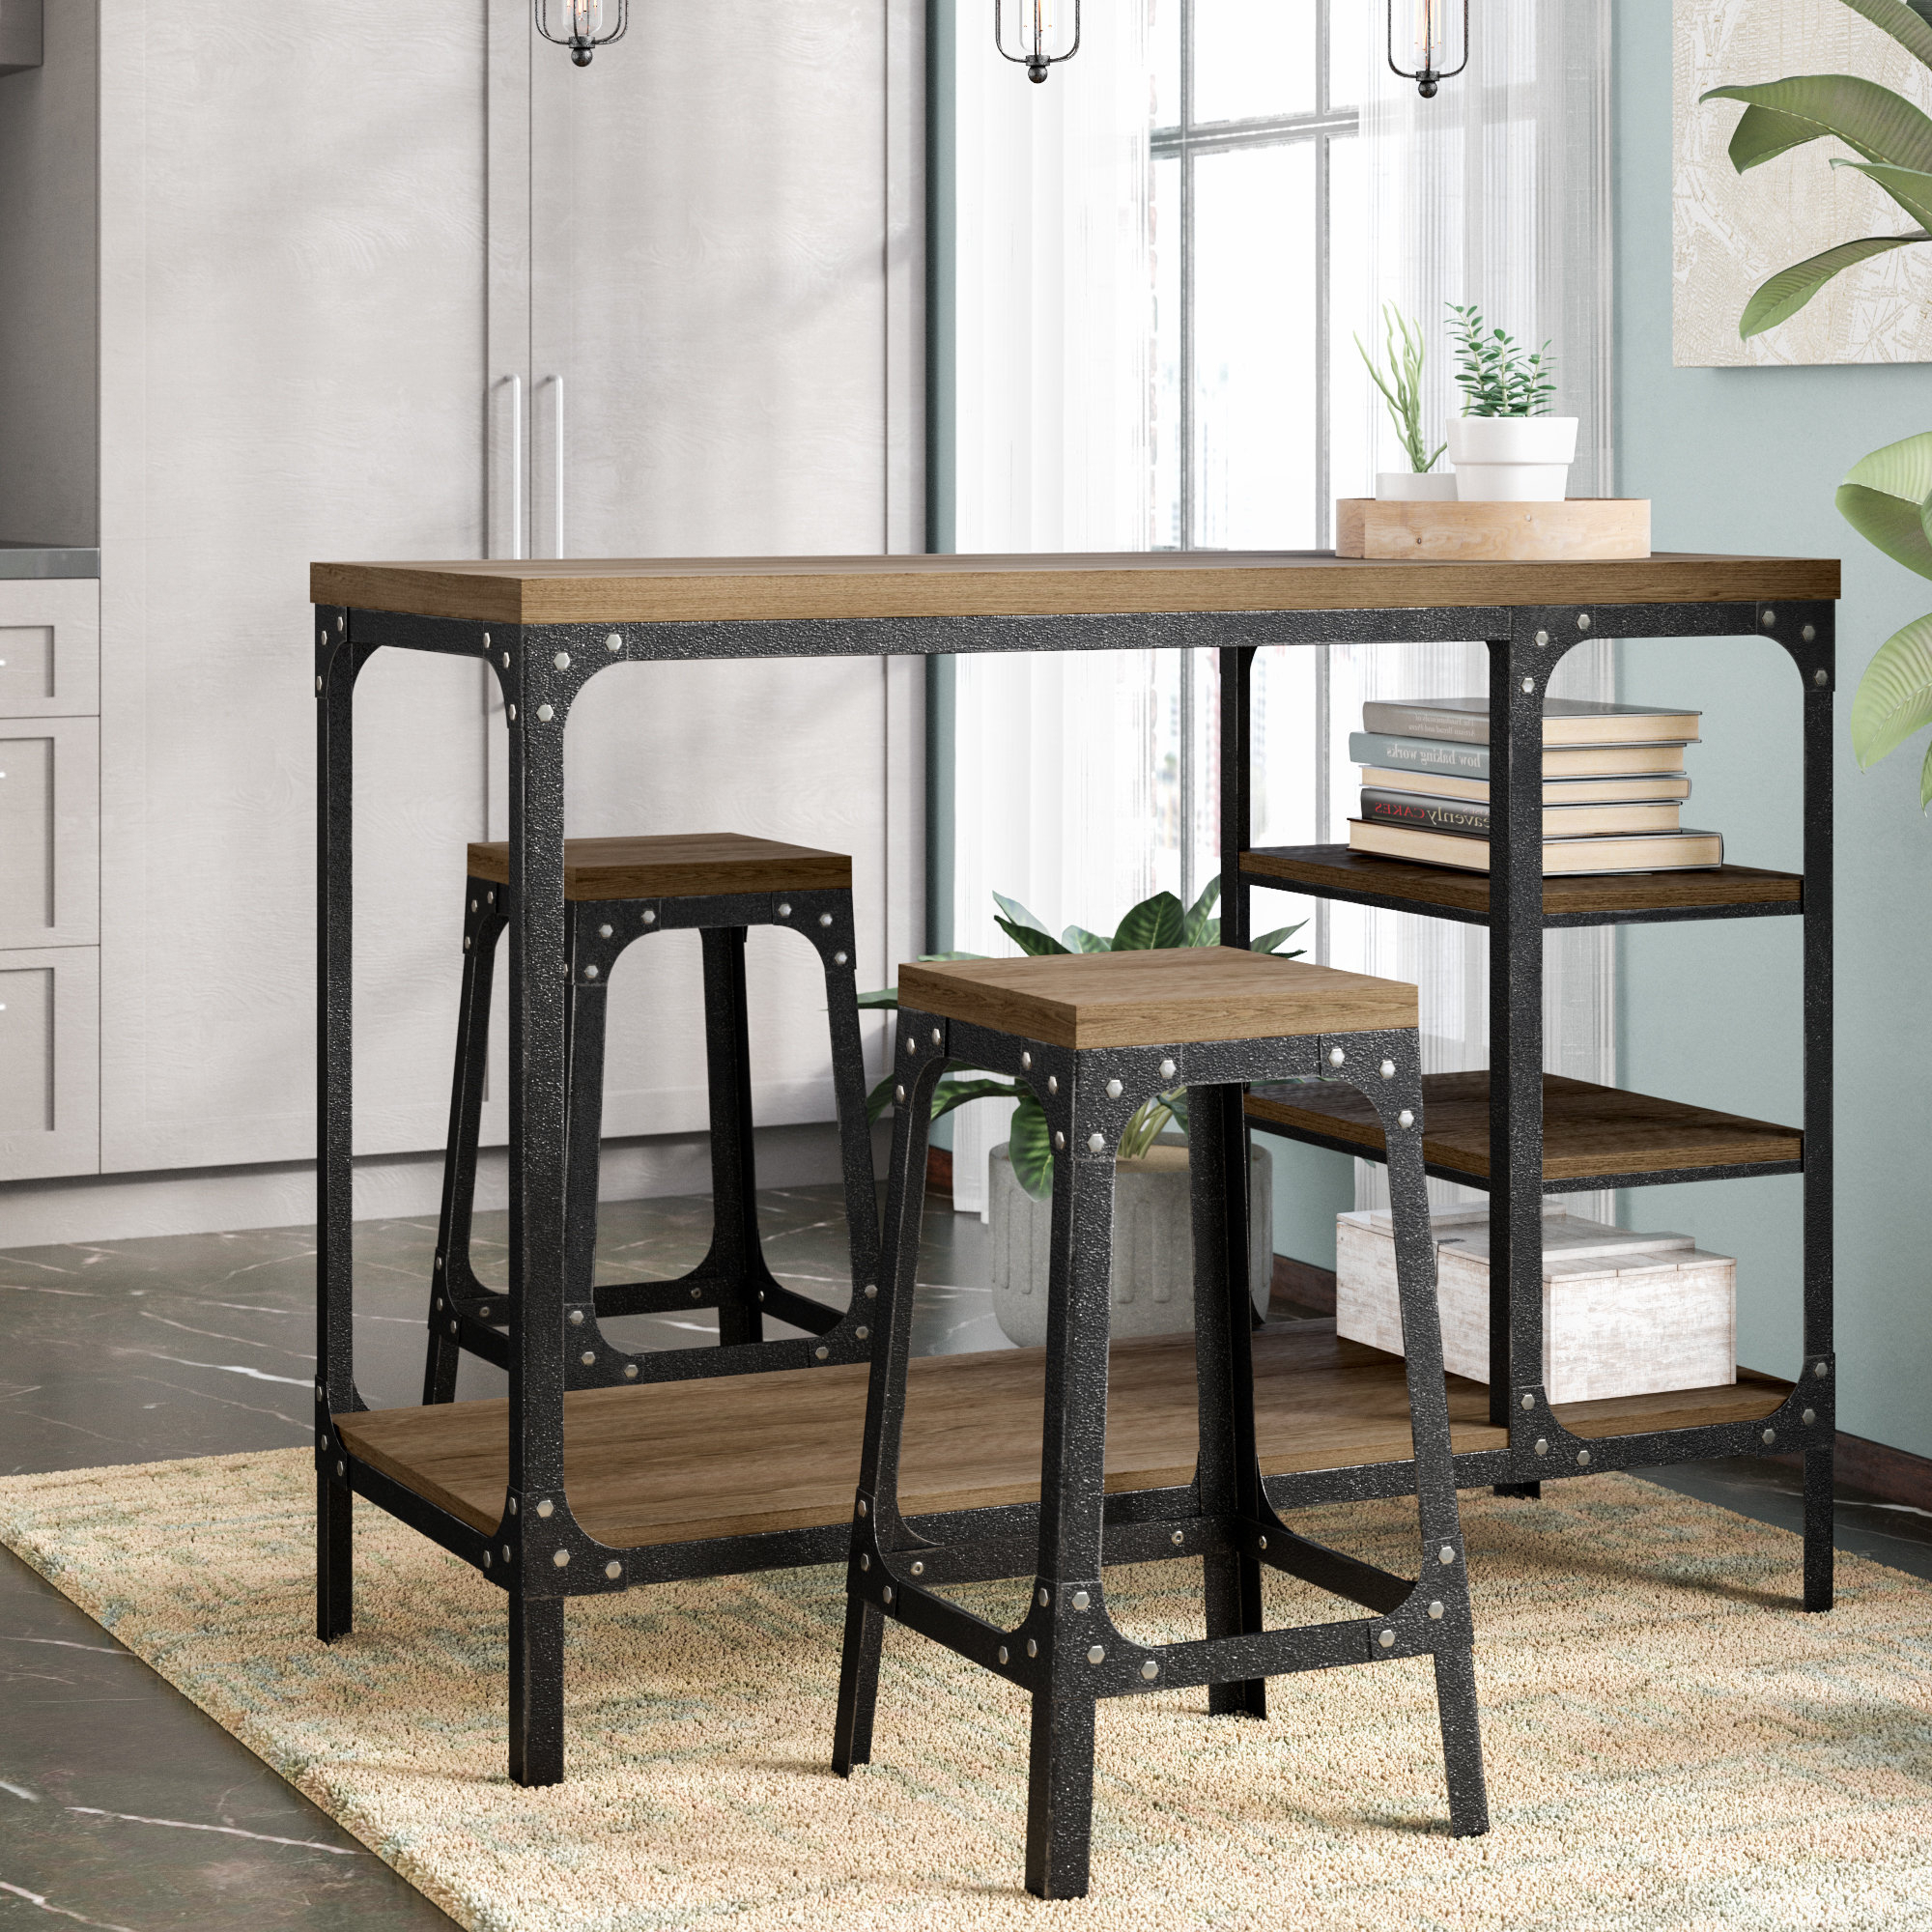 2019 Williston Forge Terence 3 Piece Breakfast Nook Dining Set & Reviews Pertaining To Berrios 3 Piece Counter Height Dining Sets (View 5 of 25)